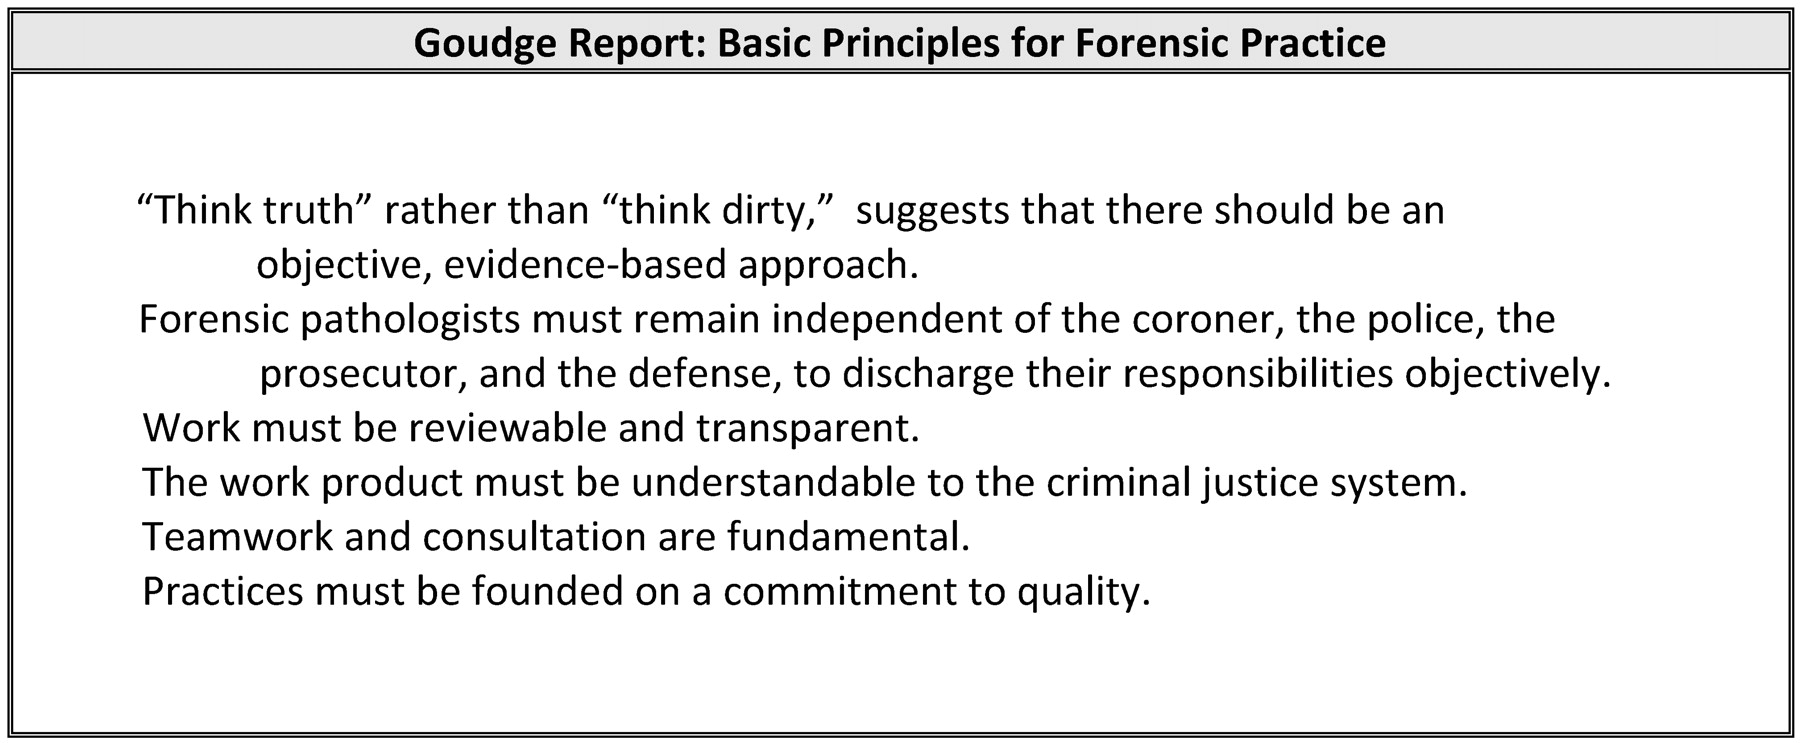 forensic psychiatry essay Forensic psychiatry is a subspecialty of psychiatry in which scientific and clinical expertise is applied to legal issues in legal contexts embracing civil, criminal, correctional or legislative matters: forensic psychiatry should be practiced in accordance with the guidelines and ethical principles enunciated by the profession of psychiatry.